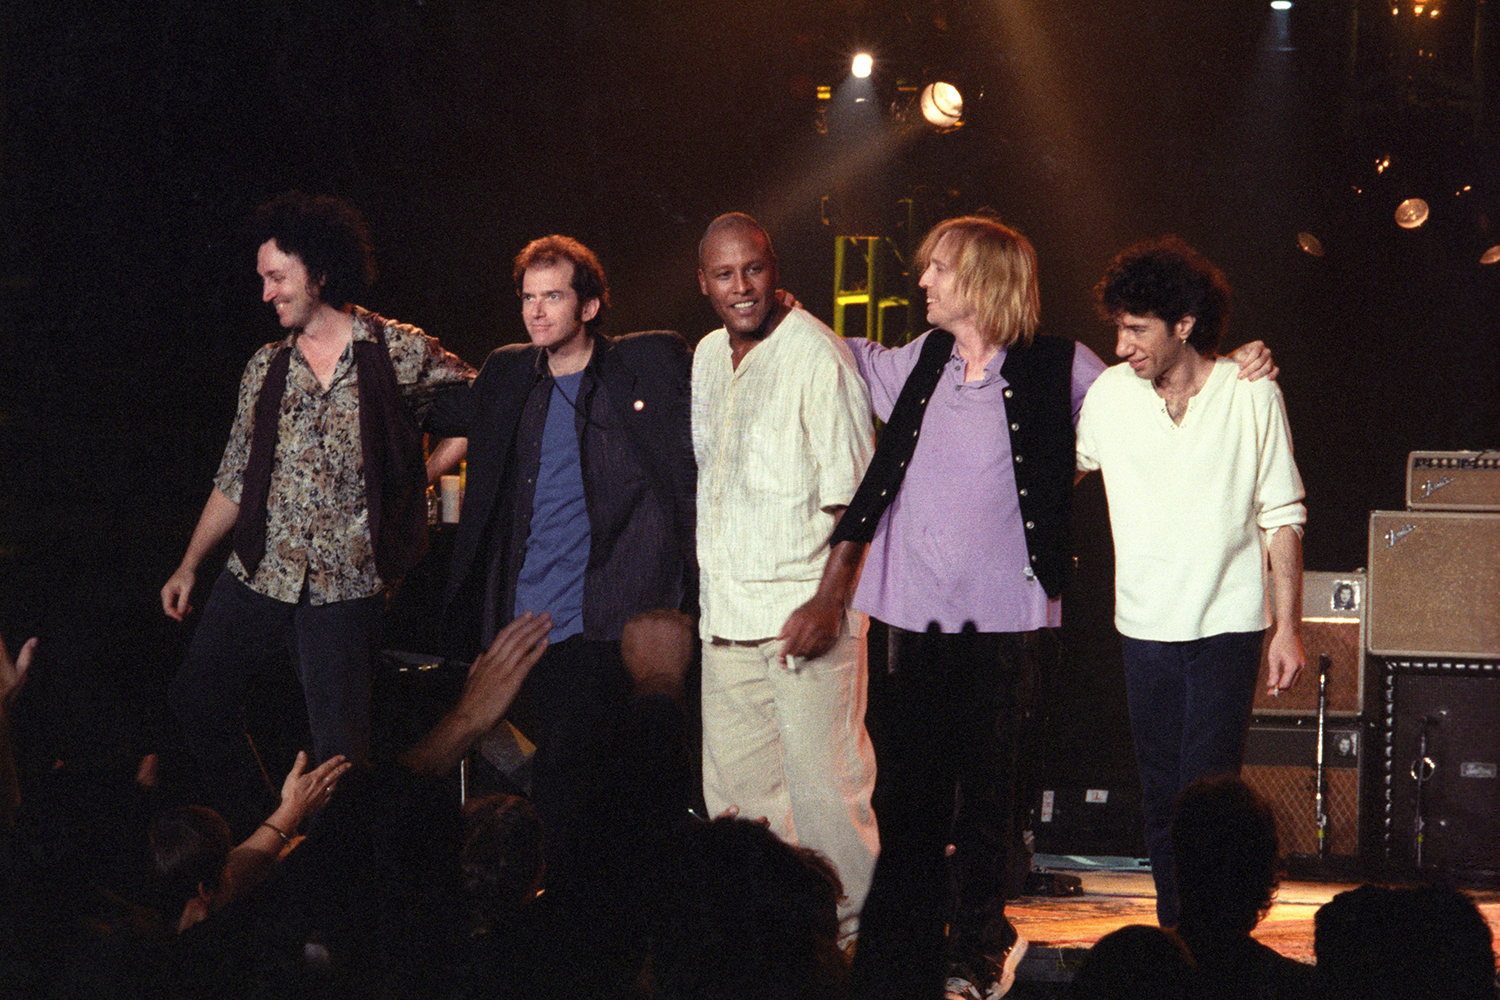 Tom Petty and the Heartbreakers in 1995